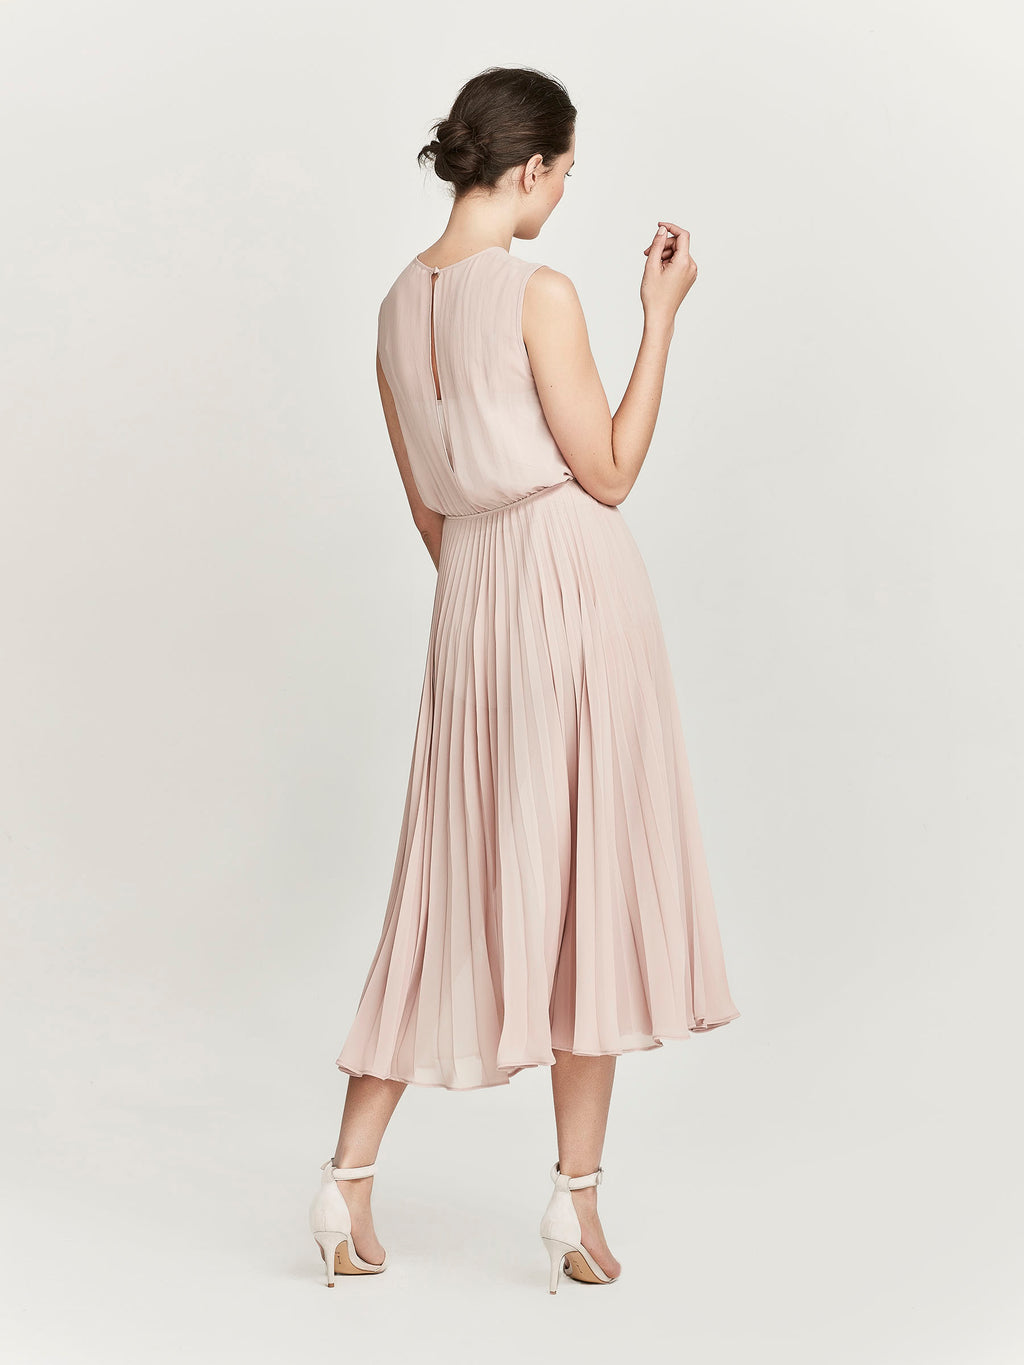 Heather Dress, Tea Rose